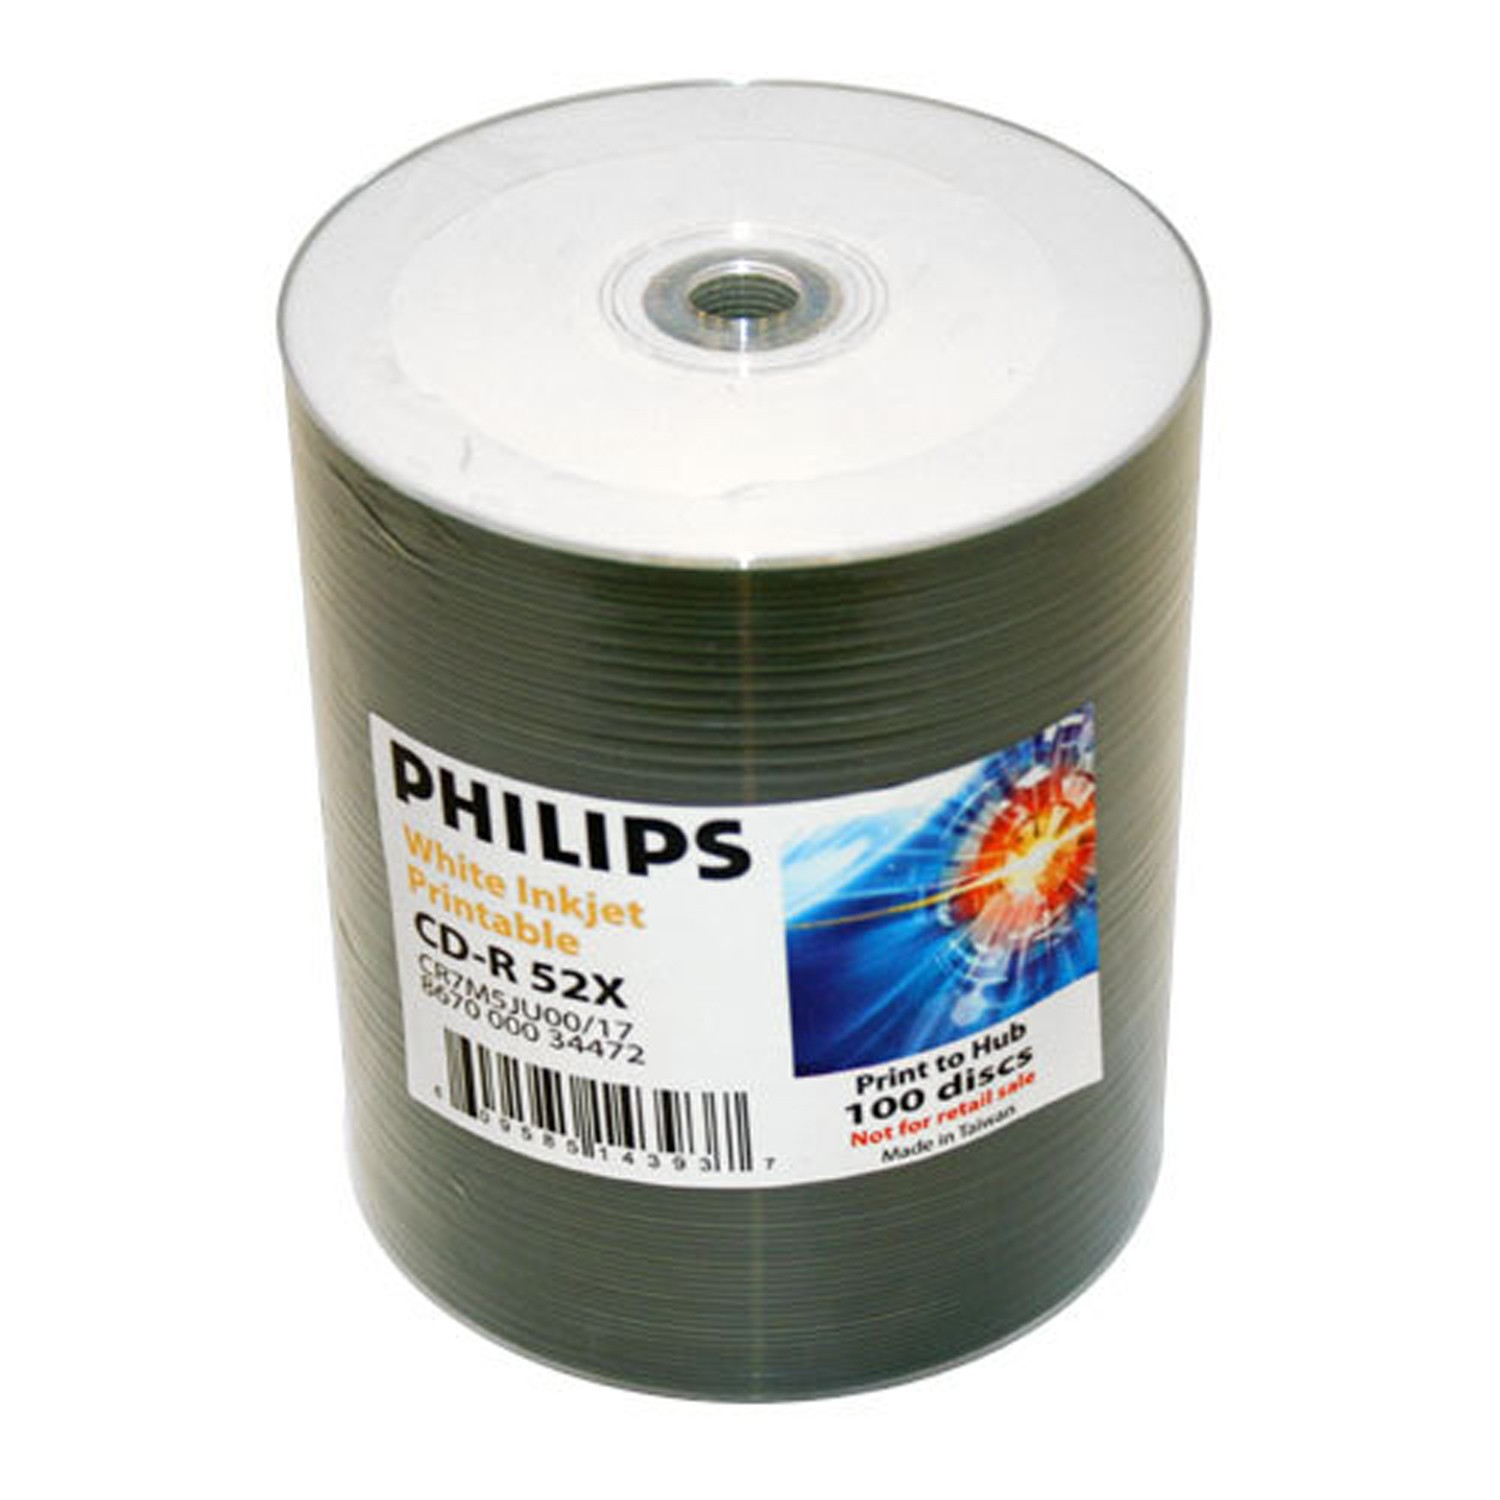 graphic relating to Blank Printable Cds identify Philips CD-R 52X White Hub Printable 100 pack - CD/DVD Blank